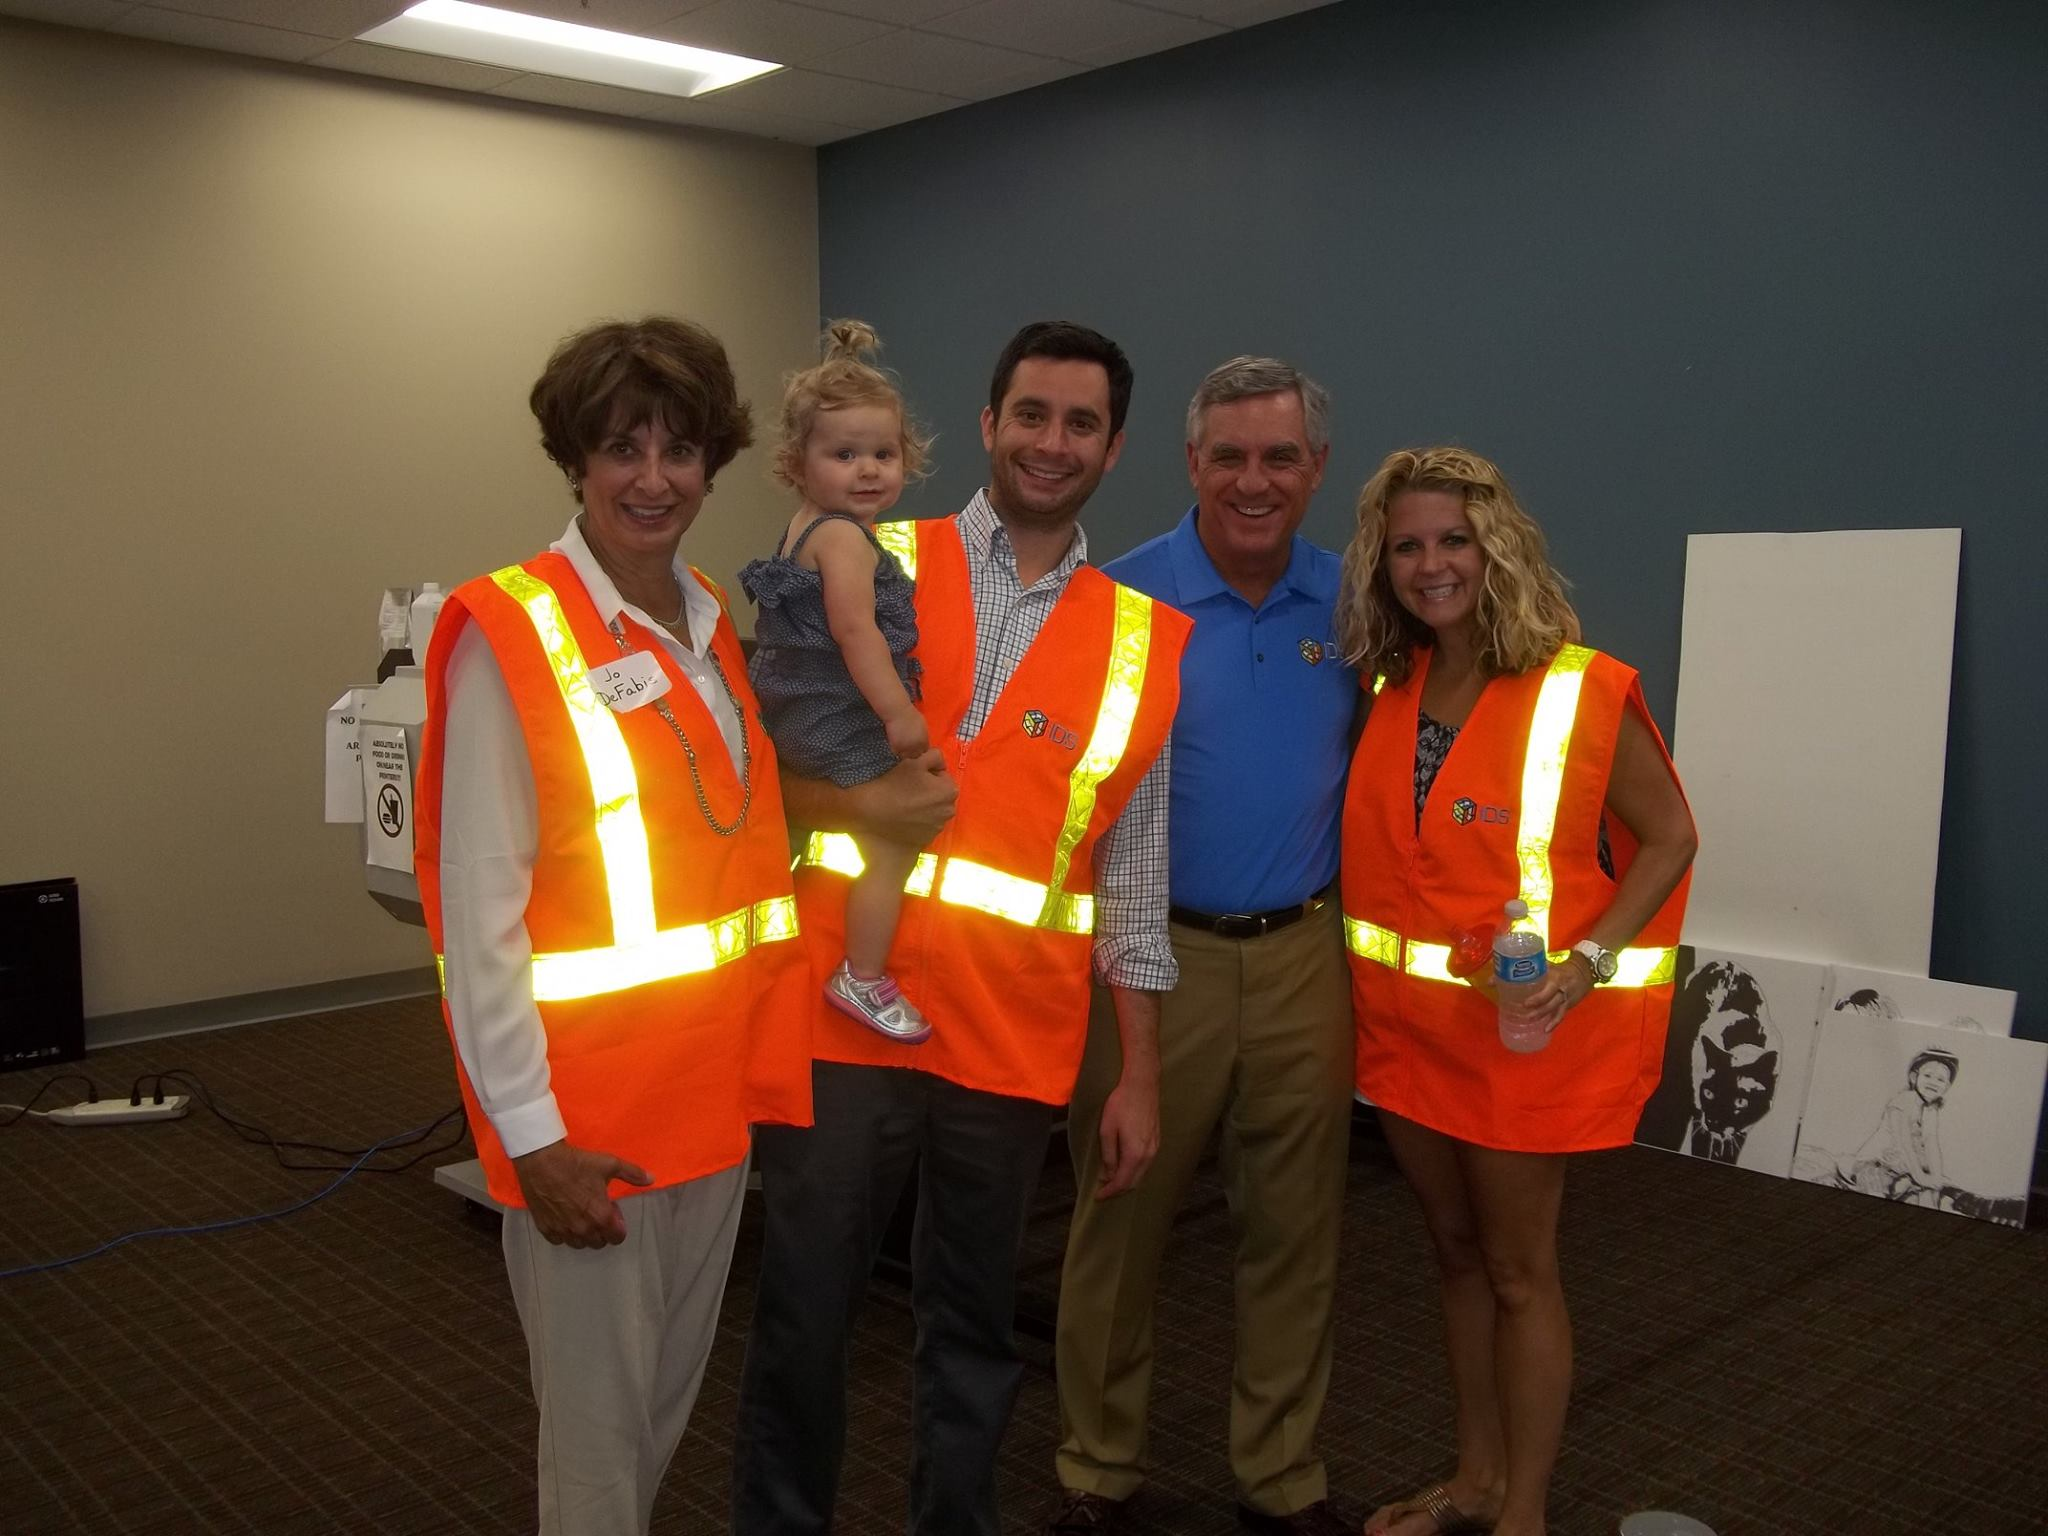 open_house_defabis.jpg